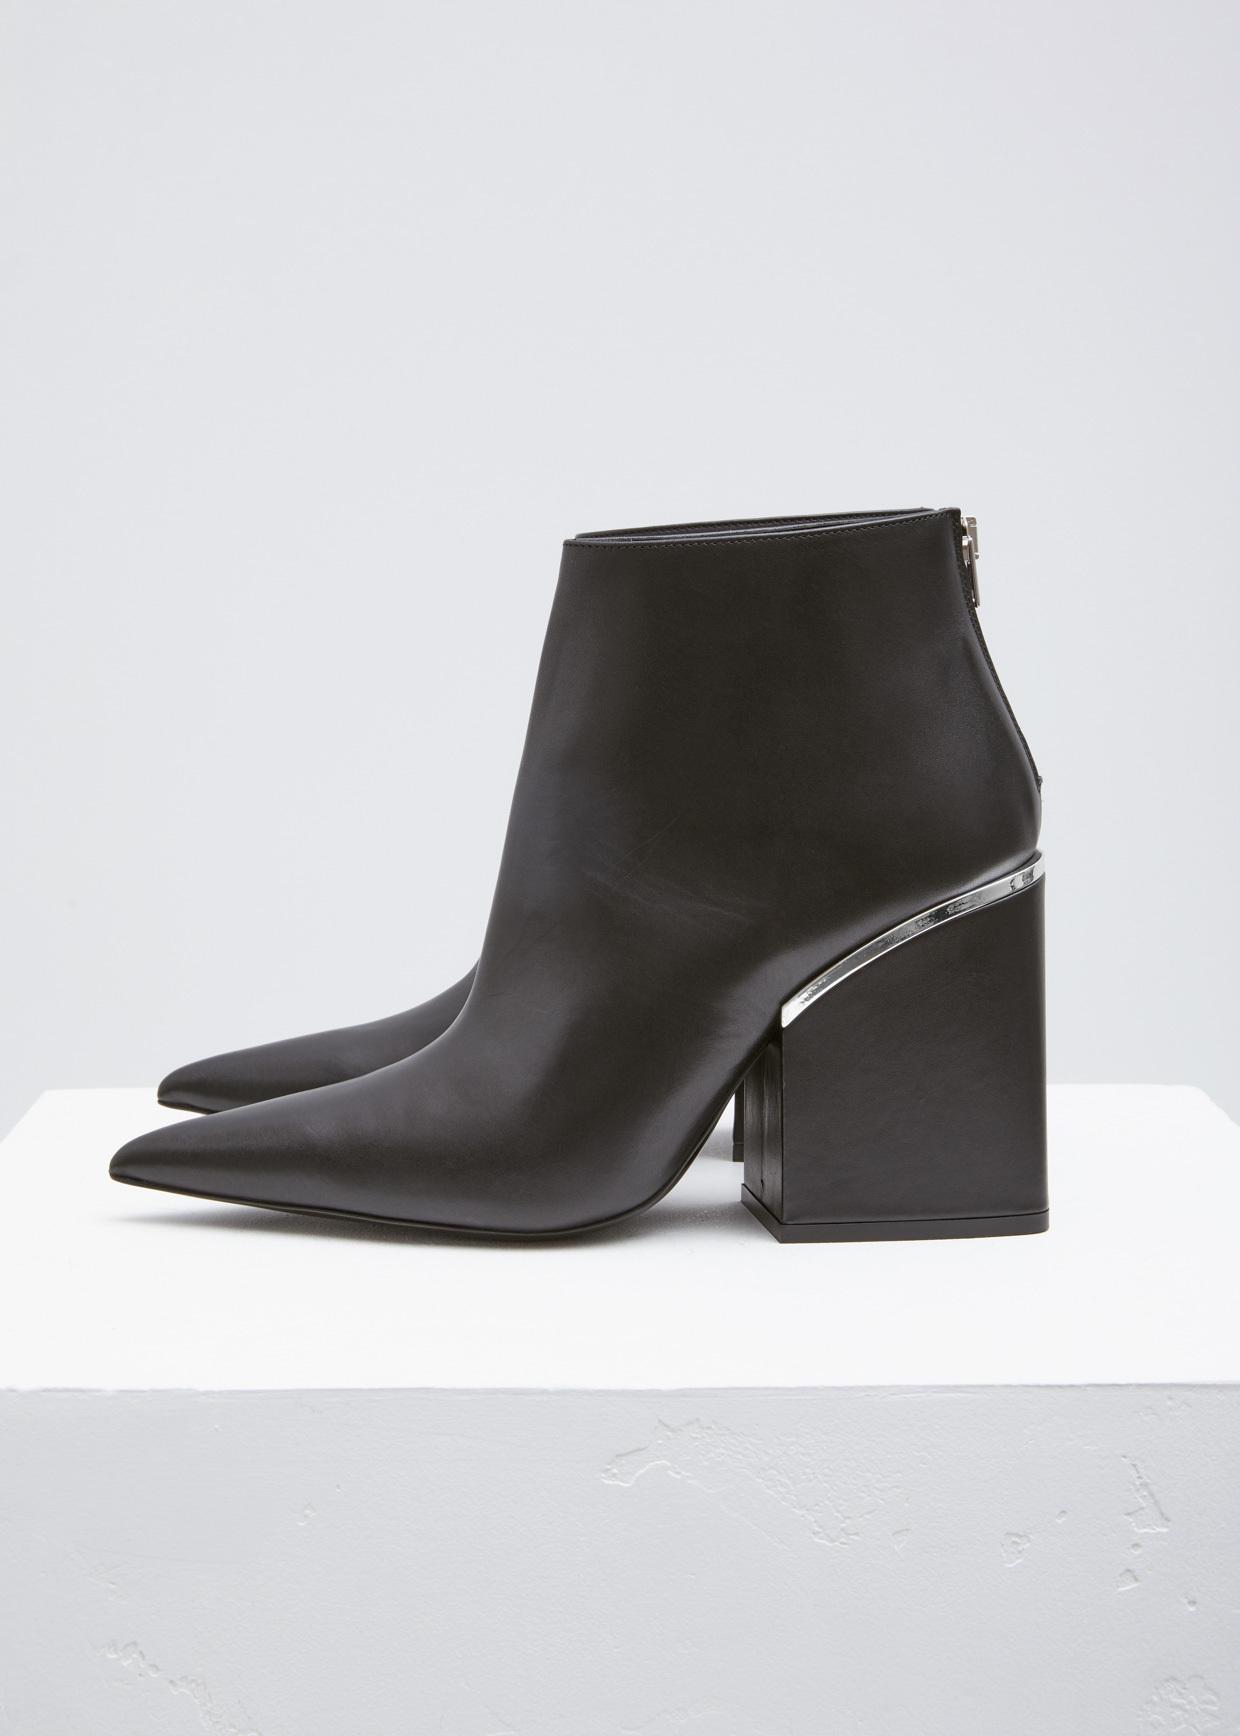 marni black silver pointed toe ankle boot in black lyst